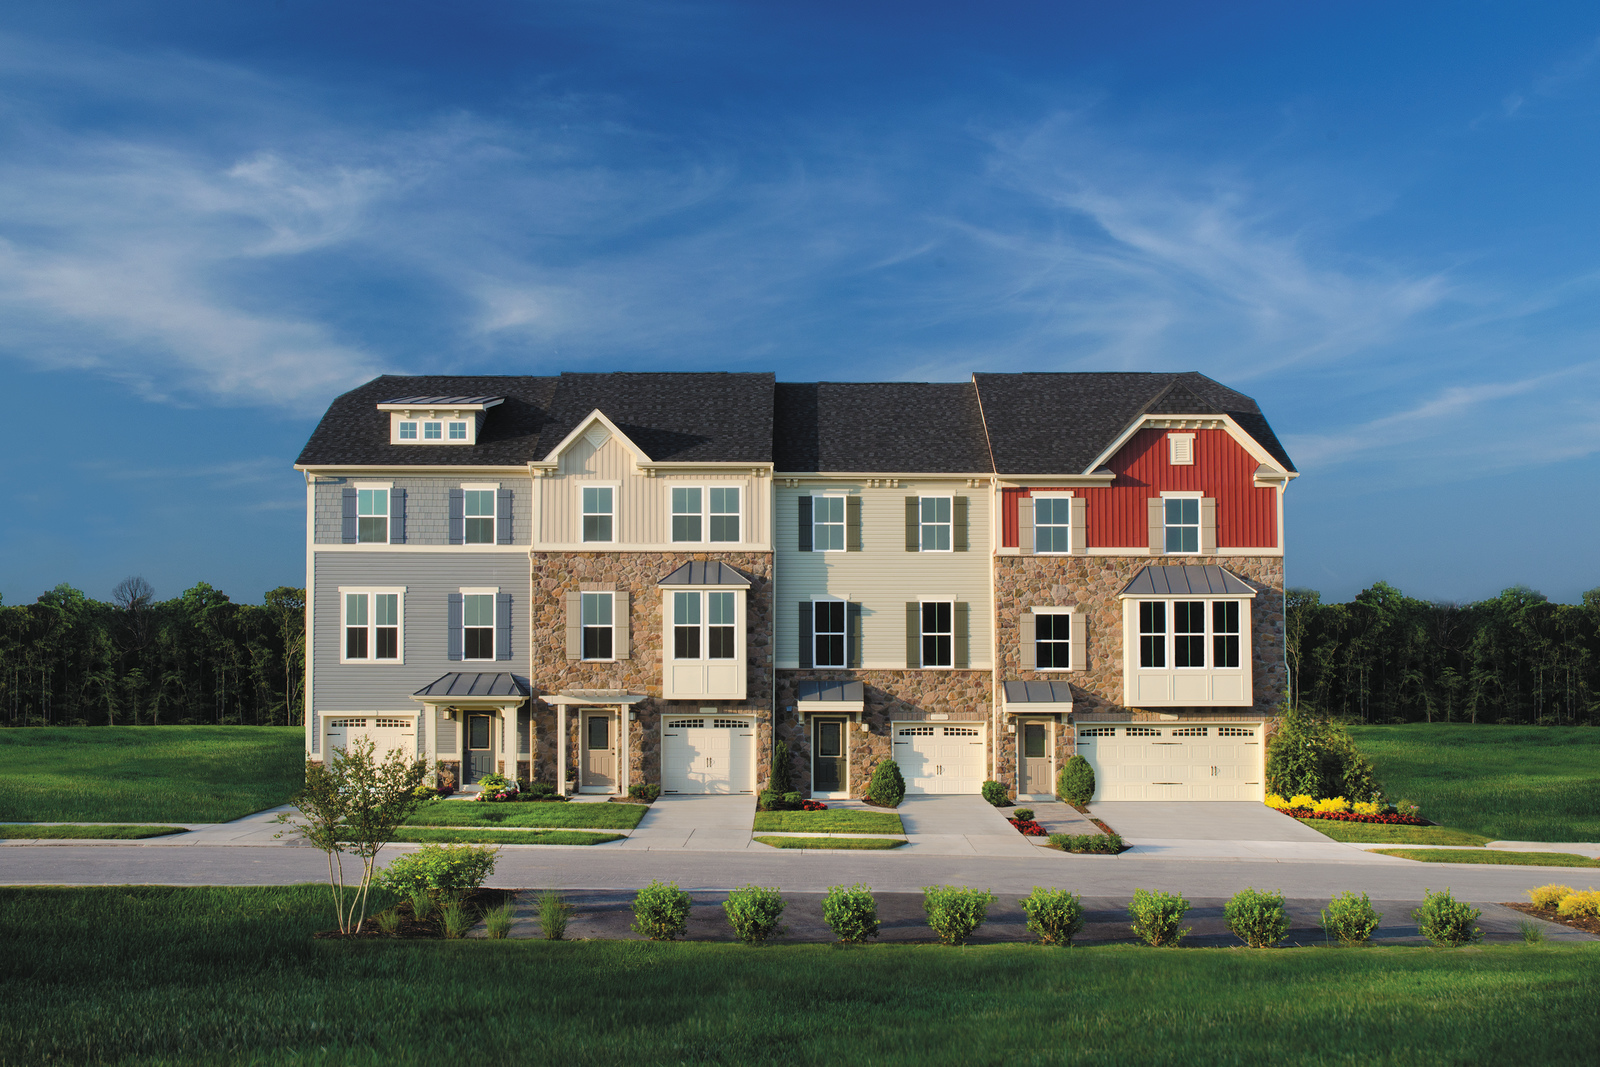 New Homes For Sale At Hermitage Townes In Henrico Va